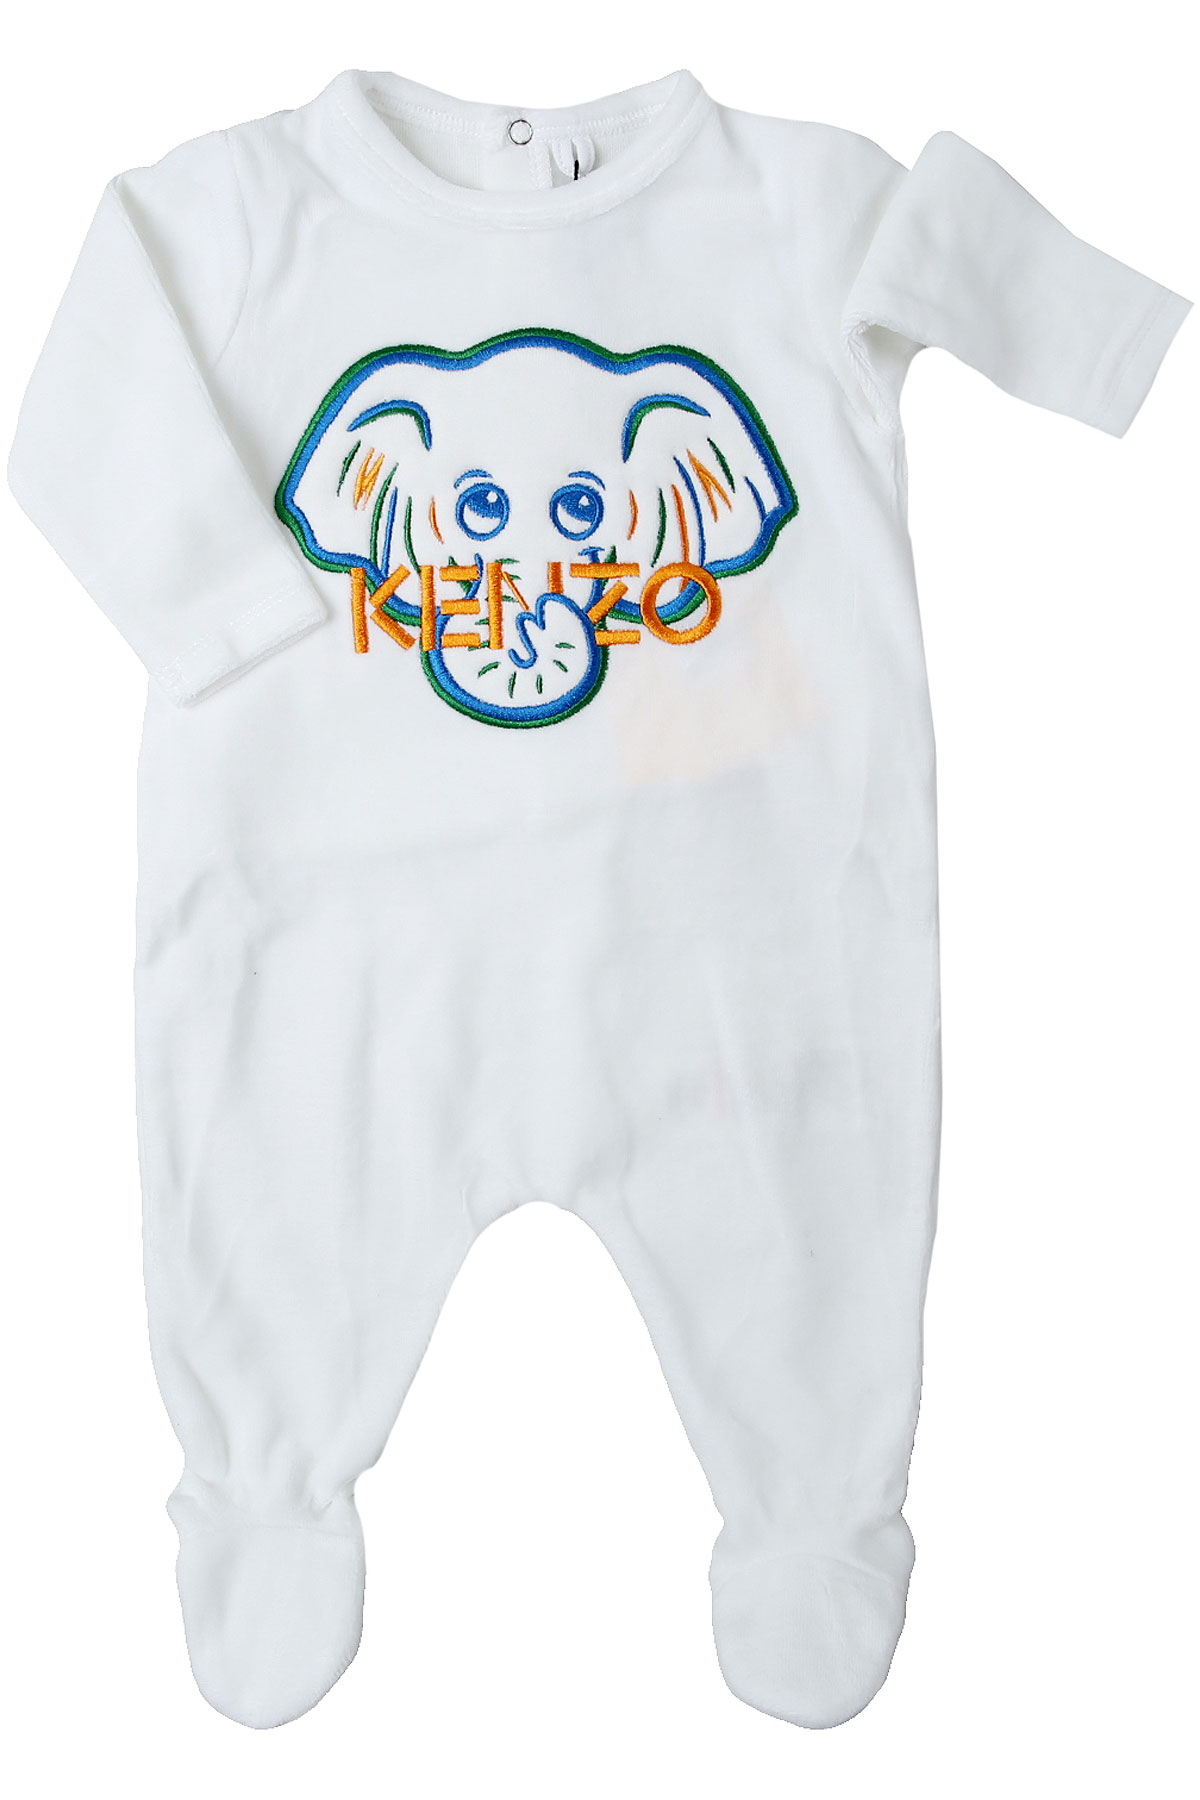 Kenzo Baby Bodysuits & Onesies for Boys On Sale, White, Cotton, 2019, 1M 3M 3Y